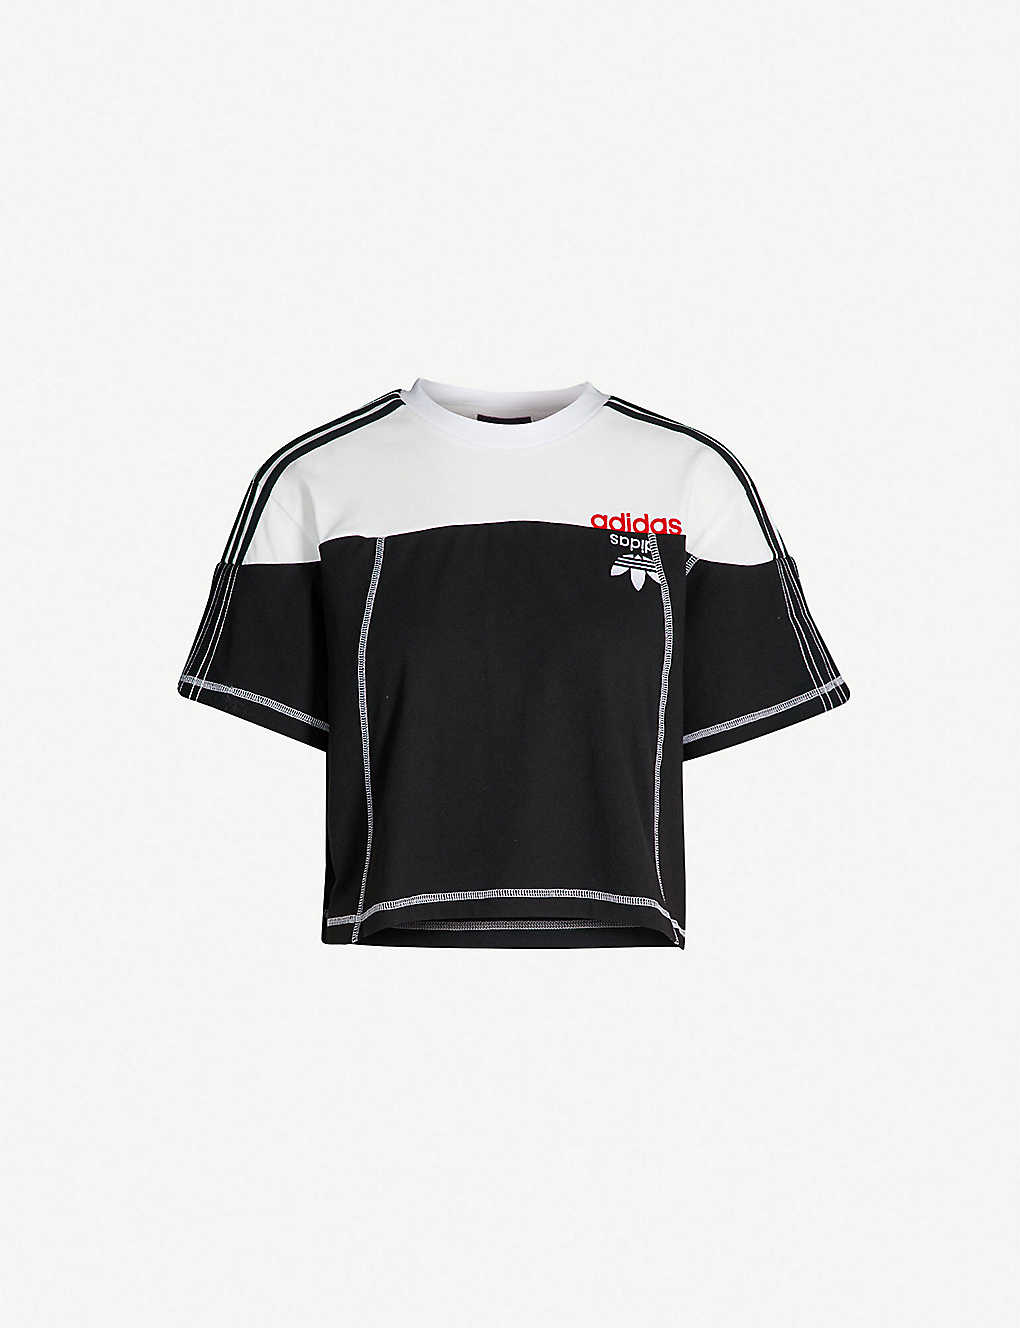 58ffc02eaff7 ADIDAS X ALEXANDER WANG - Disjoin cotton-jersey crop top ...